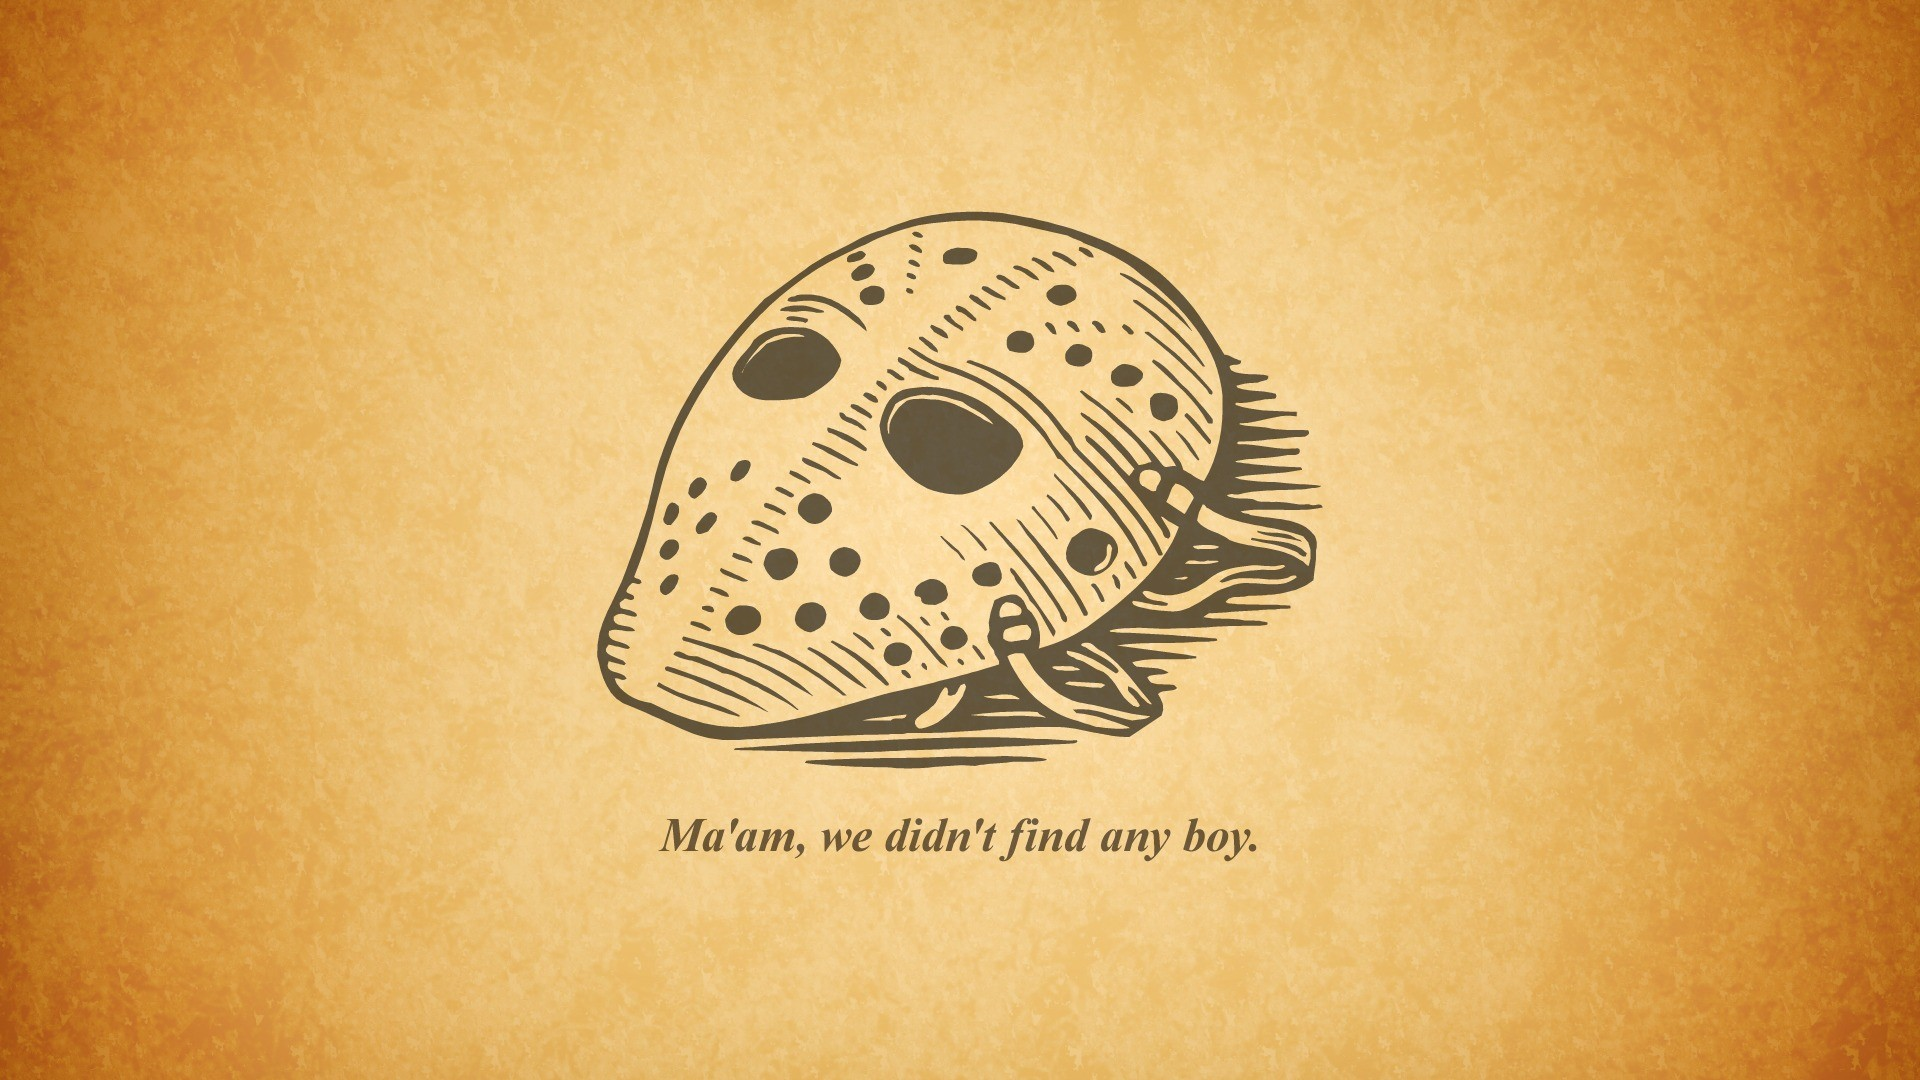 1920x1080 Friday the 13th quote HD Wallpaper  Friday ...